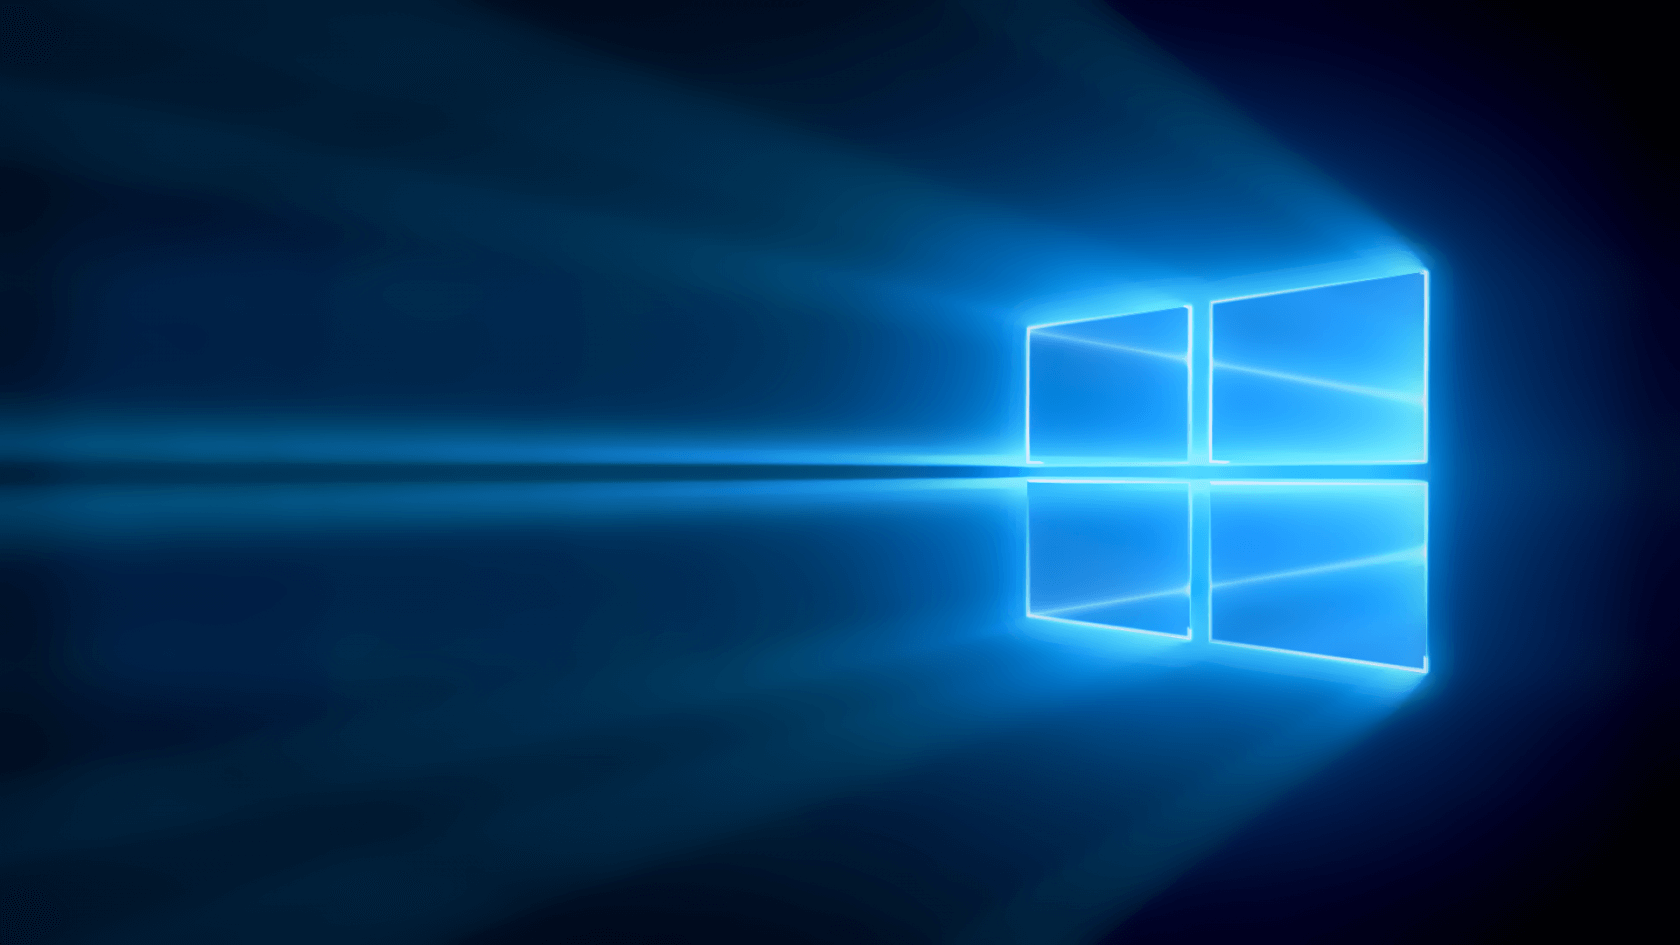 how to update to windows 10 for free 2019